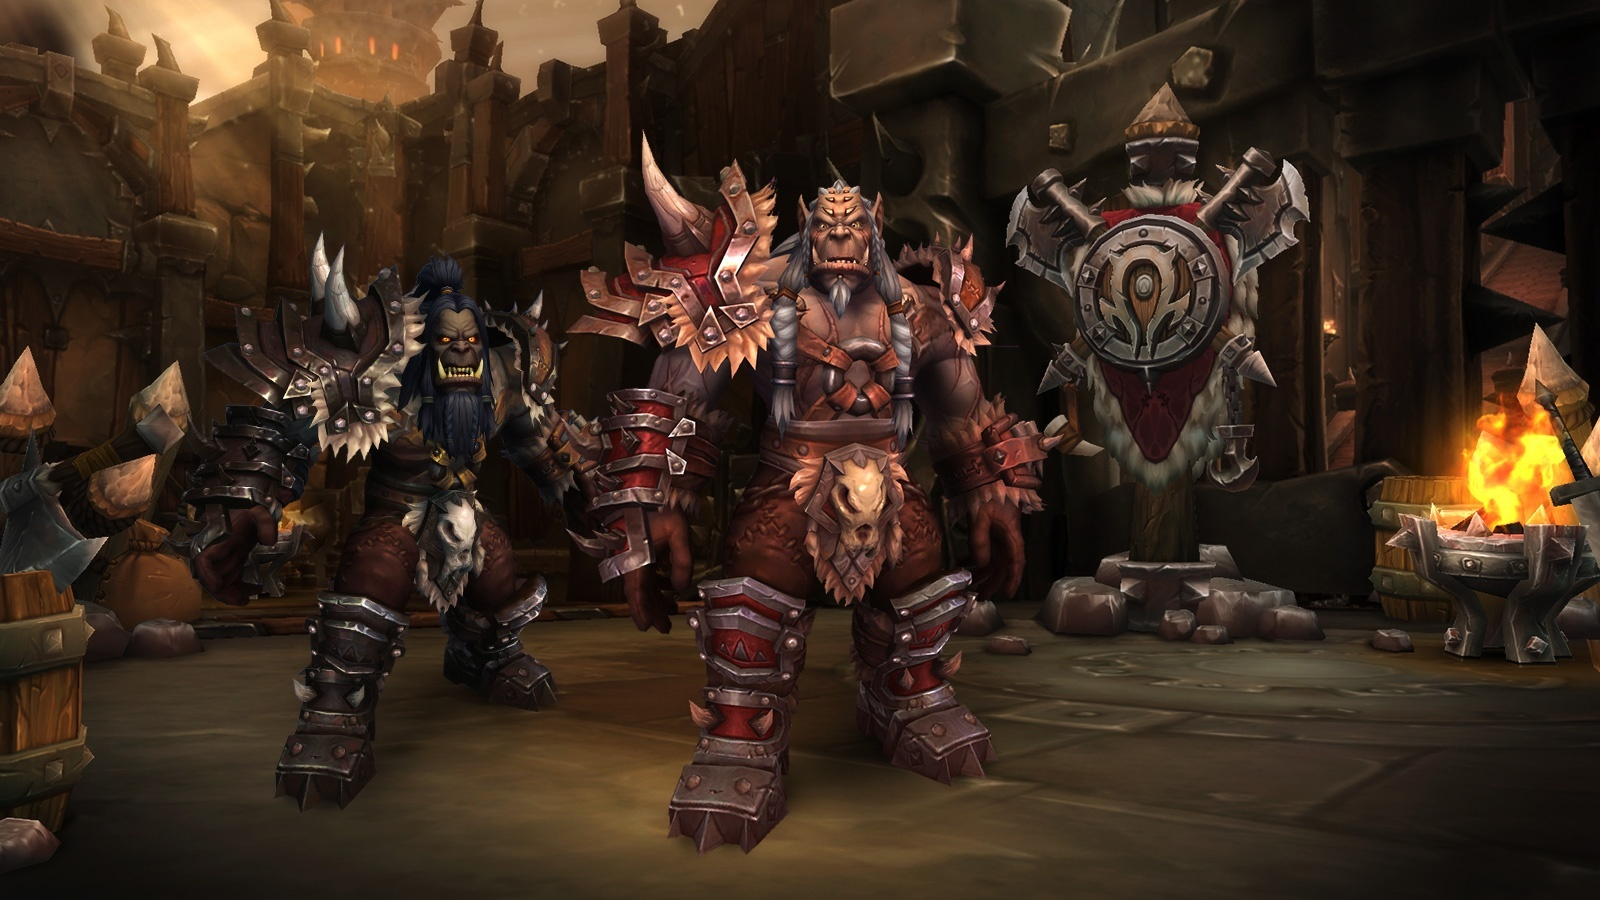 https://wow.zamimg.com/uploads/news/13669-maghar-orc-allied-race-recruitment-scenario-broadcast-text-spoilers.jpg